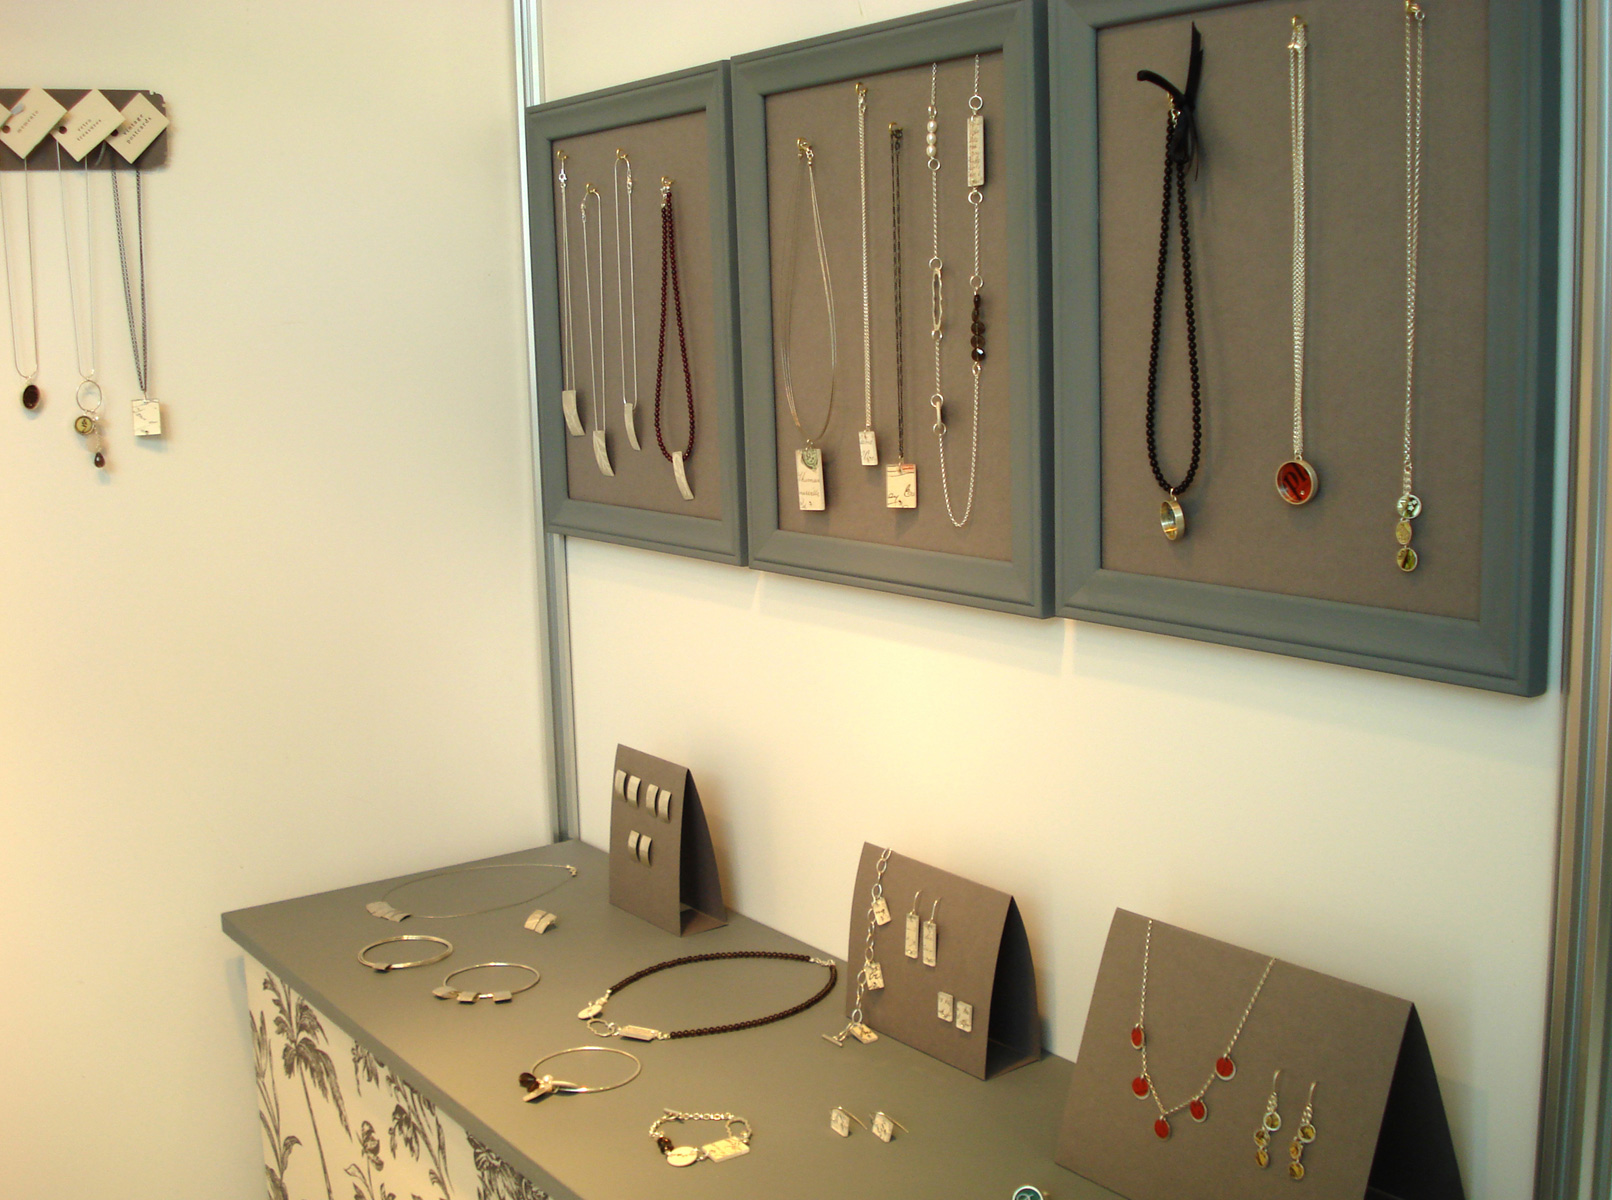 Miranda Hughes Jewellery crated a simple setting for this display using frames, cardboard and a display table to show off the merchandise.